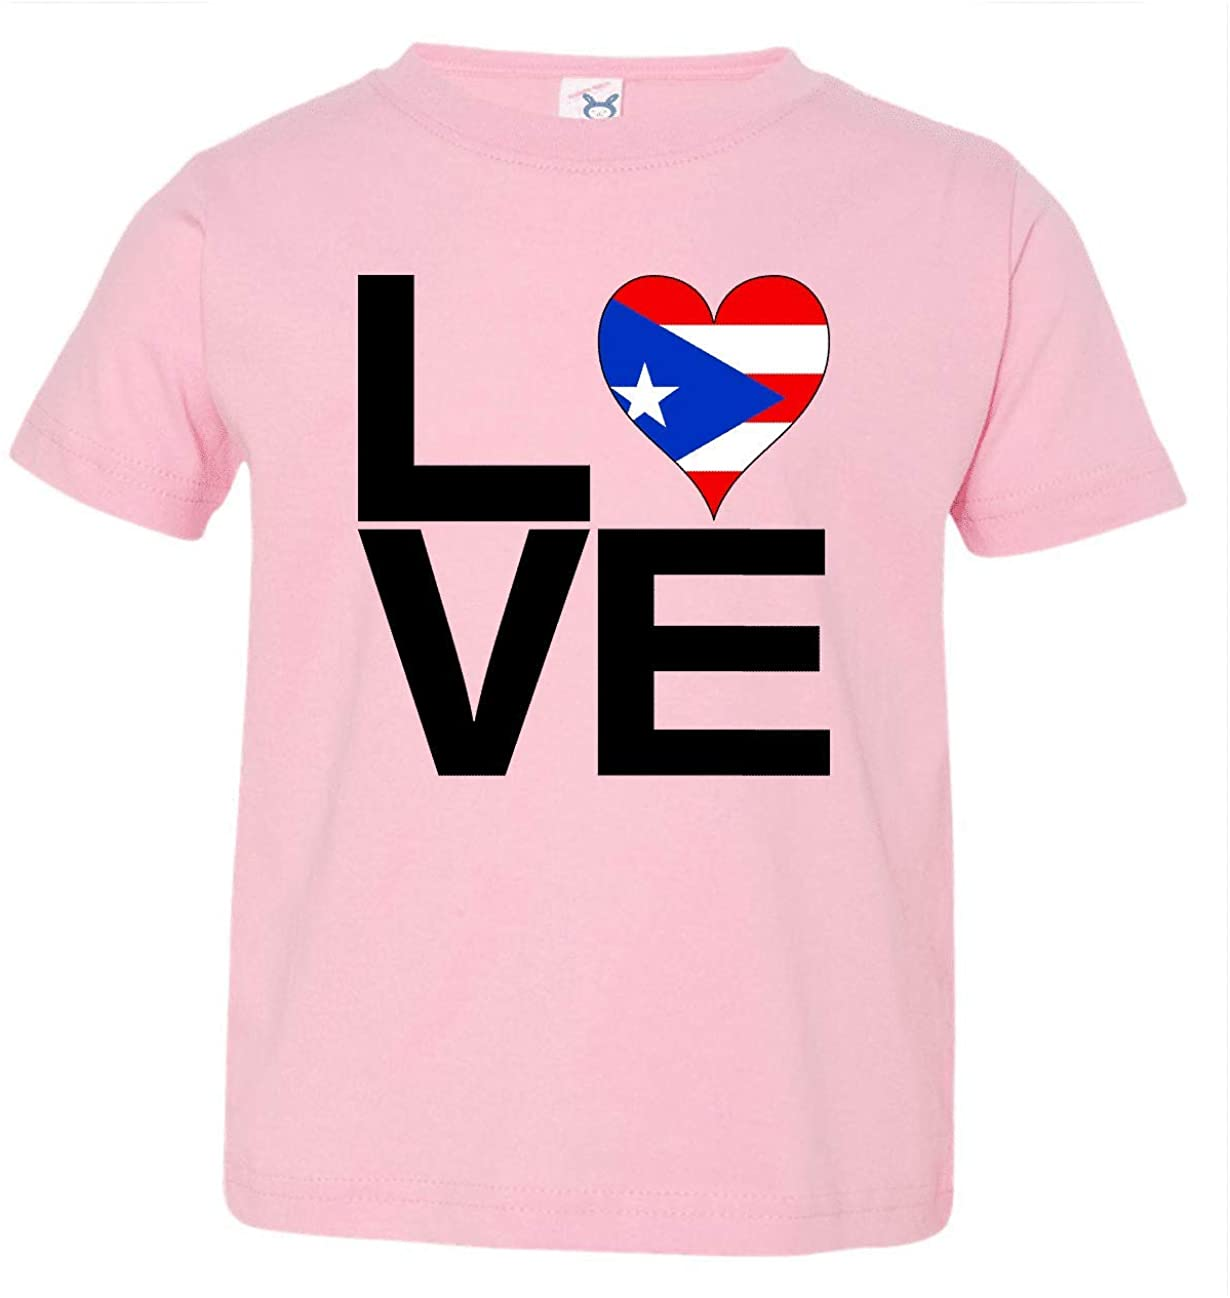 HARD EDGE DESIGN Toddler's Love Block Puerto Rico Heart T-Shirt, 2T, Pink